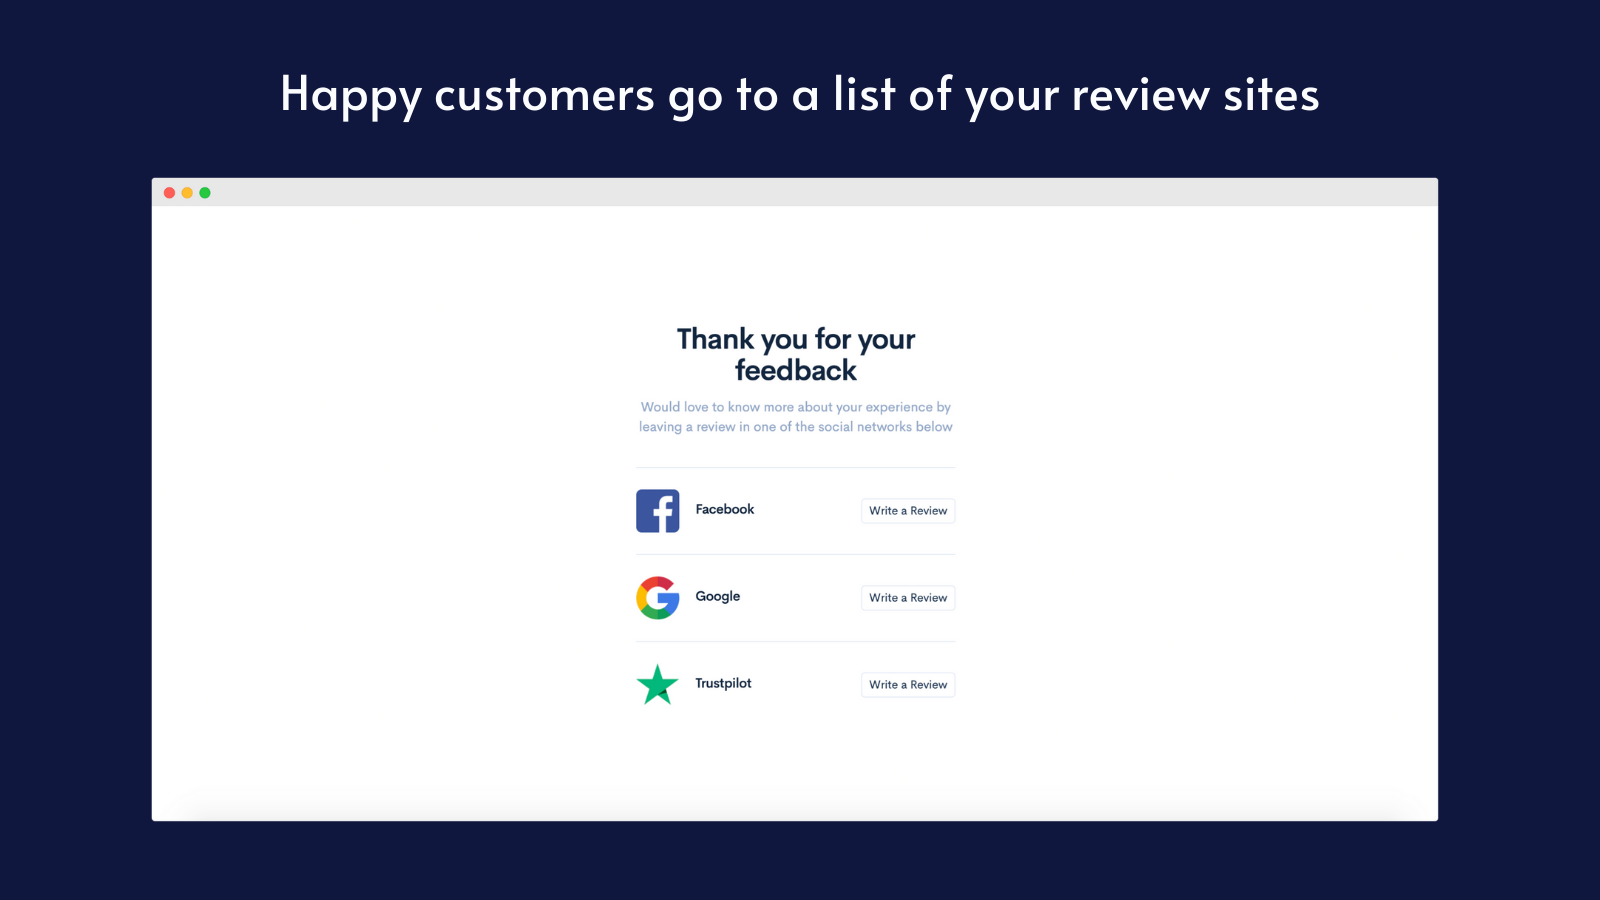 Happy customers are linked to your review sites